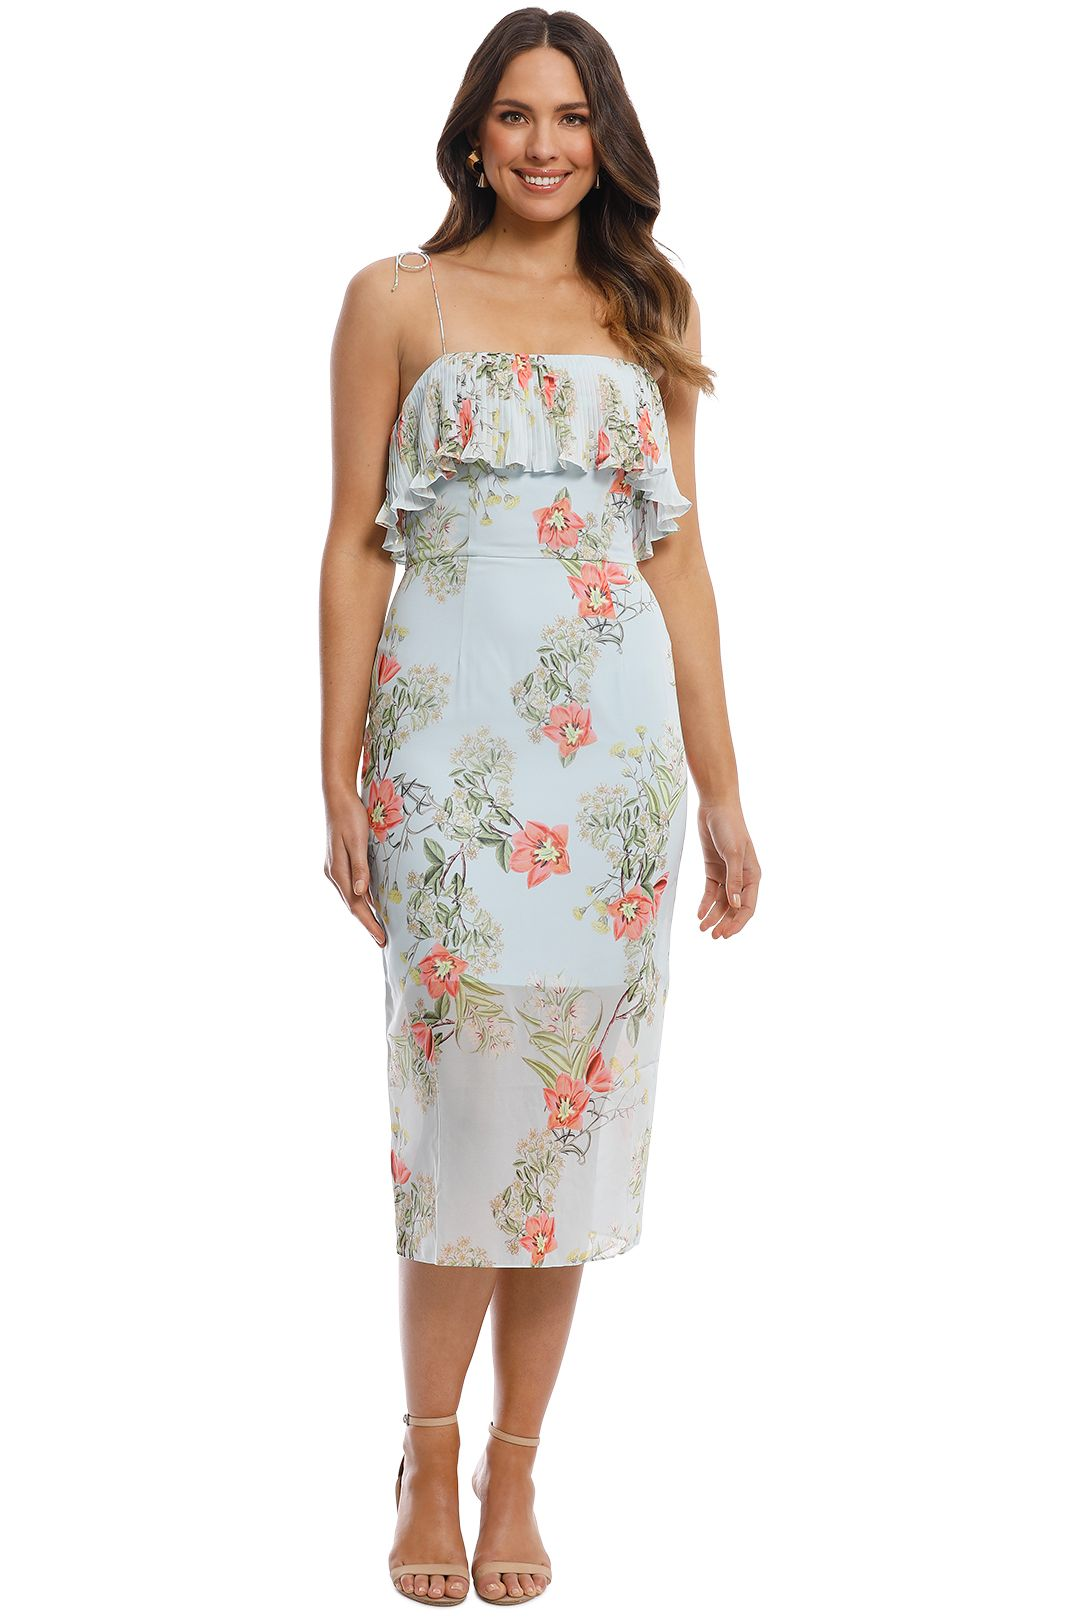 Cooper St - Blooming Knee Length Dress - Print Light - Front